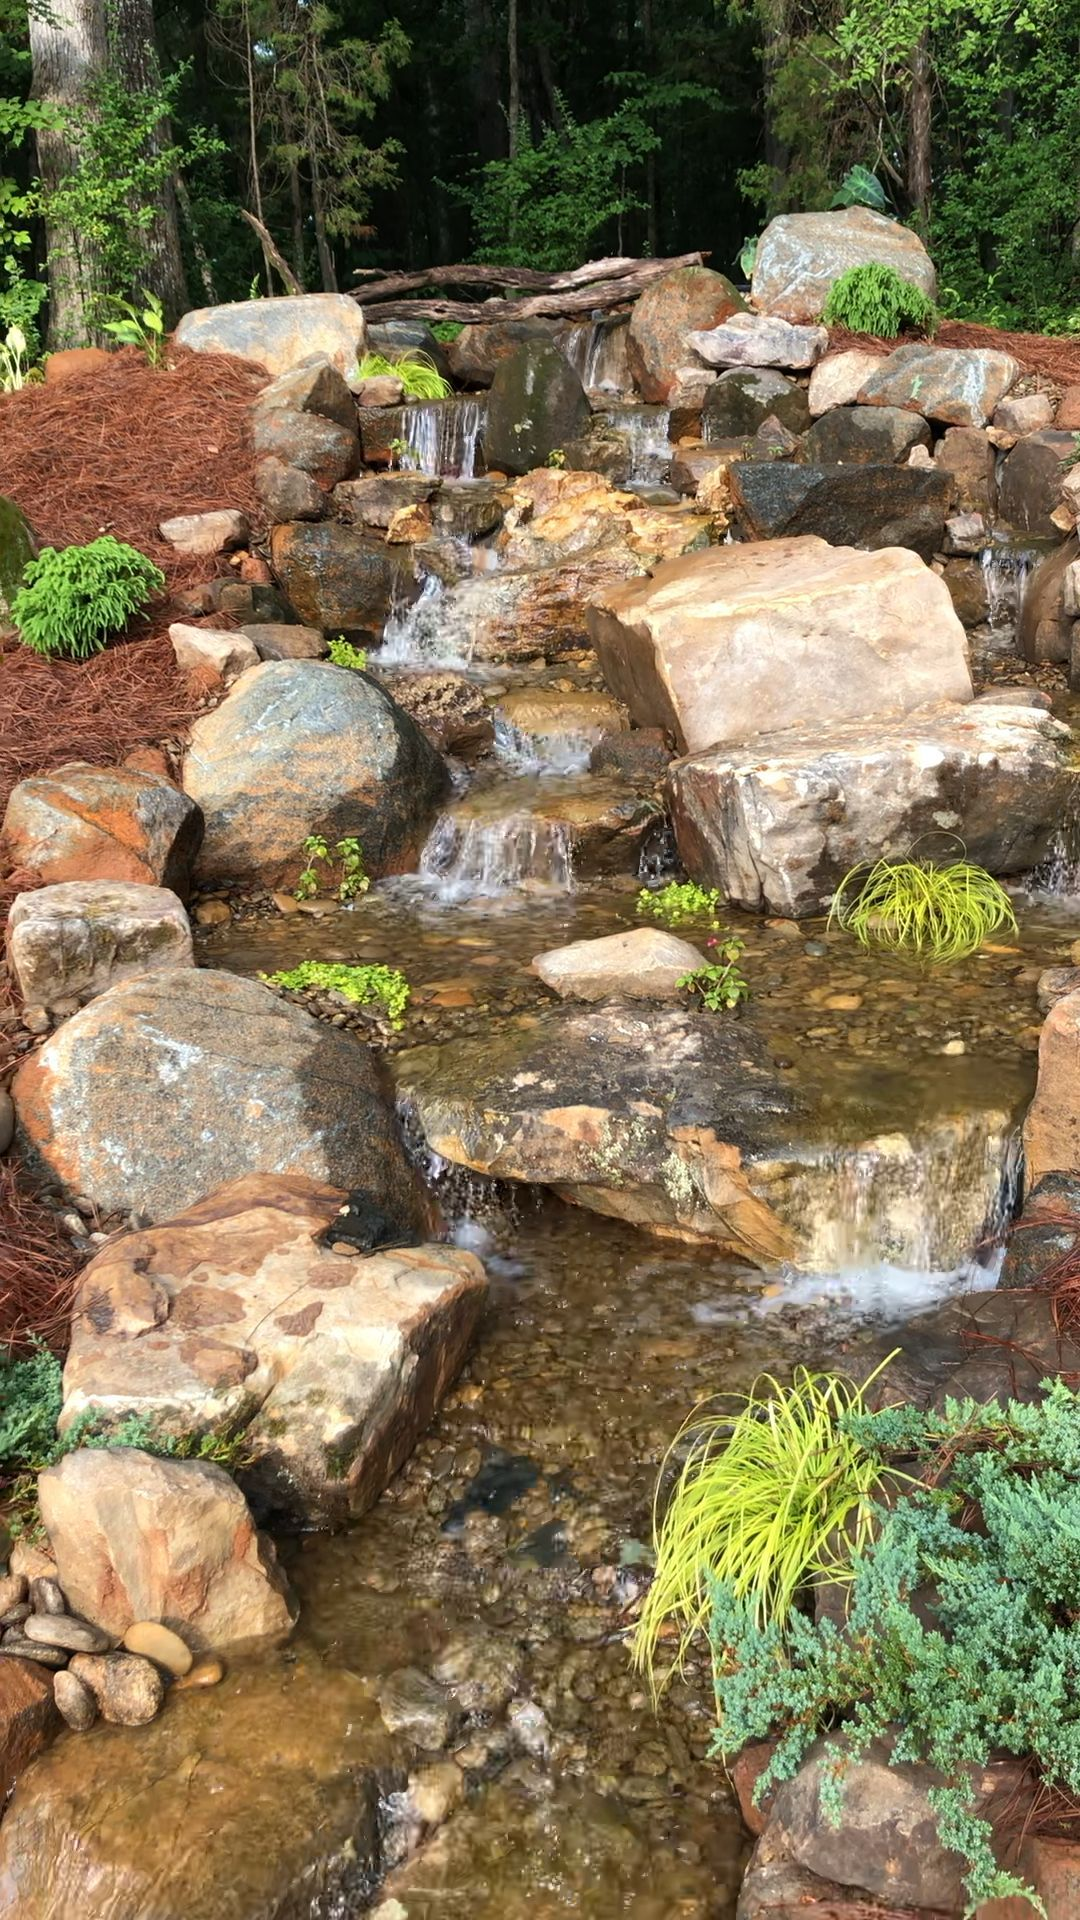 84 Diy Back Yard Waterfall Ideas To Beautify Your Home Garden84